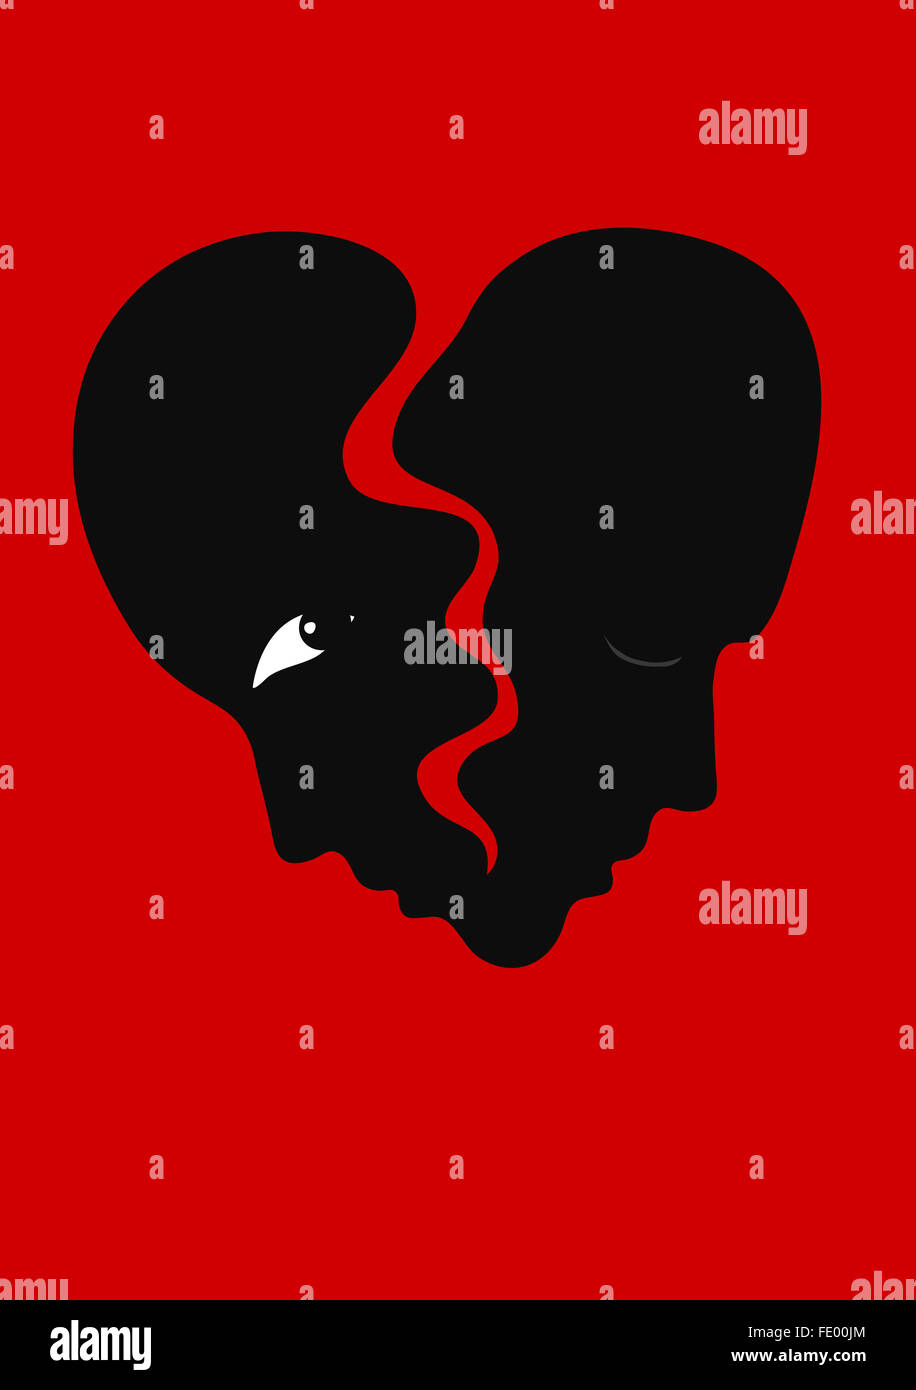 Two faces as a heart about to break. Illustration of a separation. Stock Photo